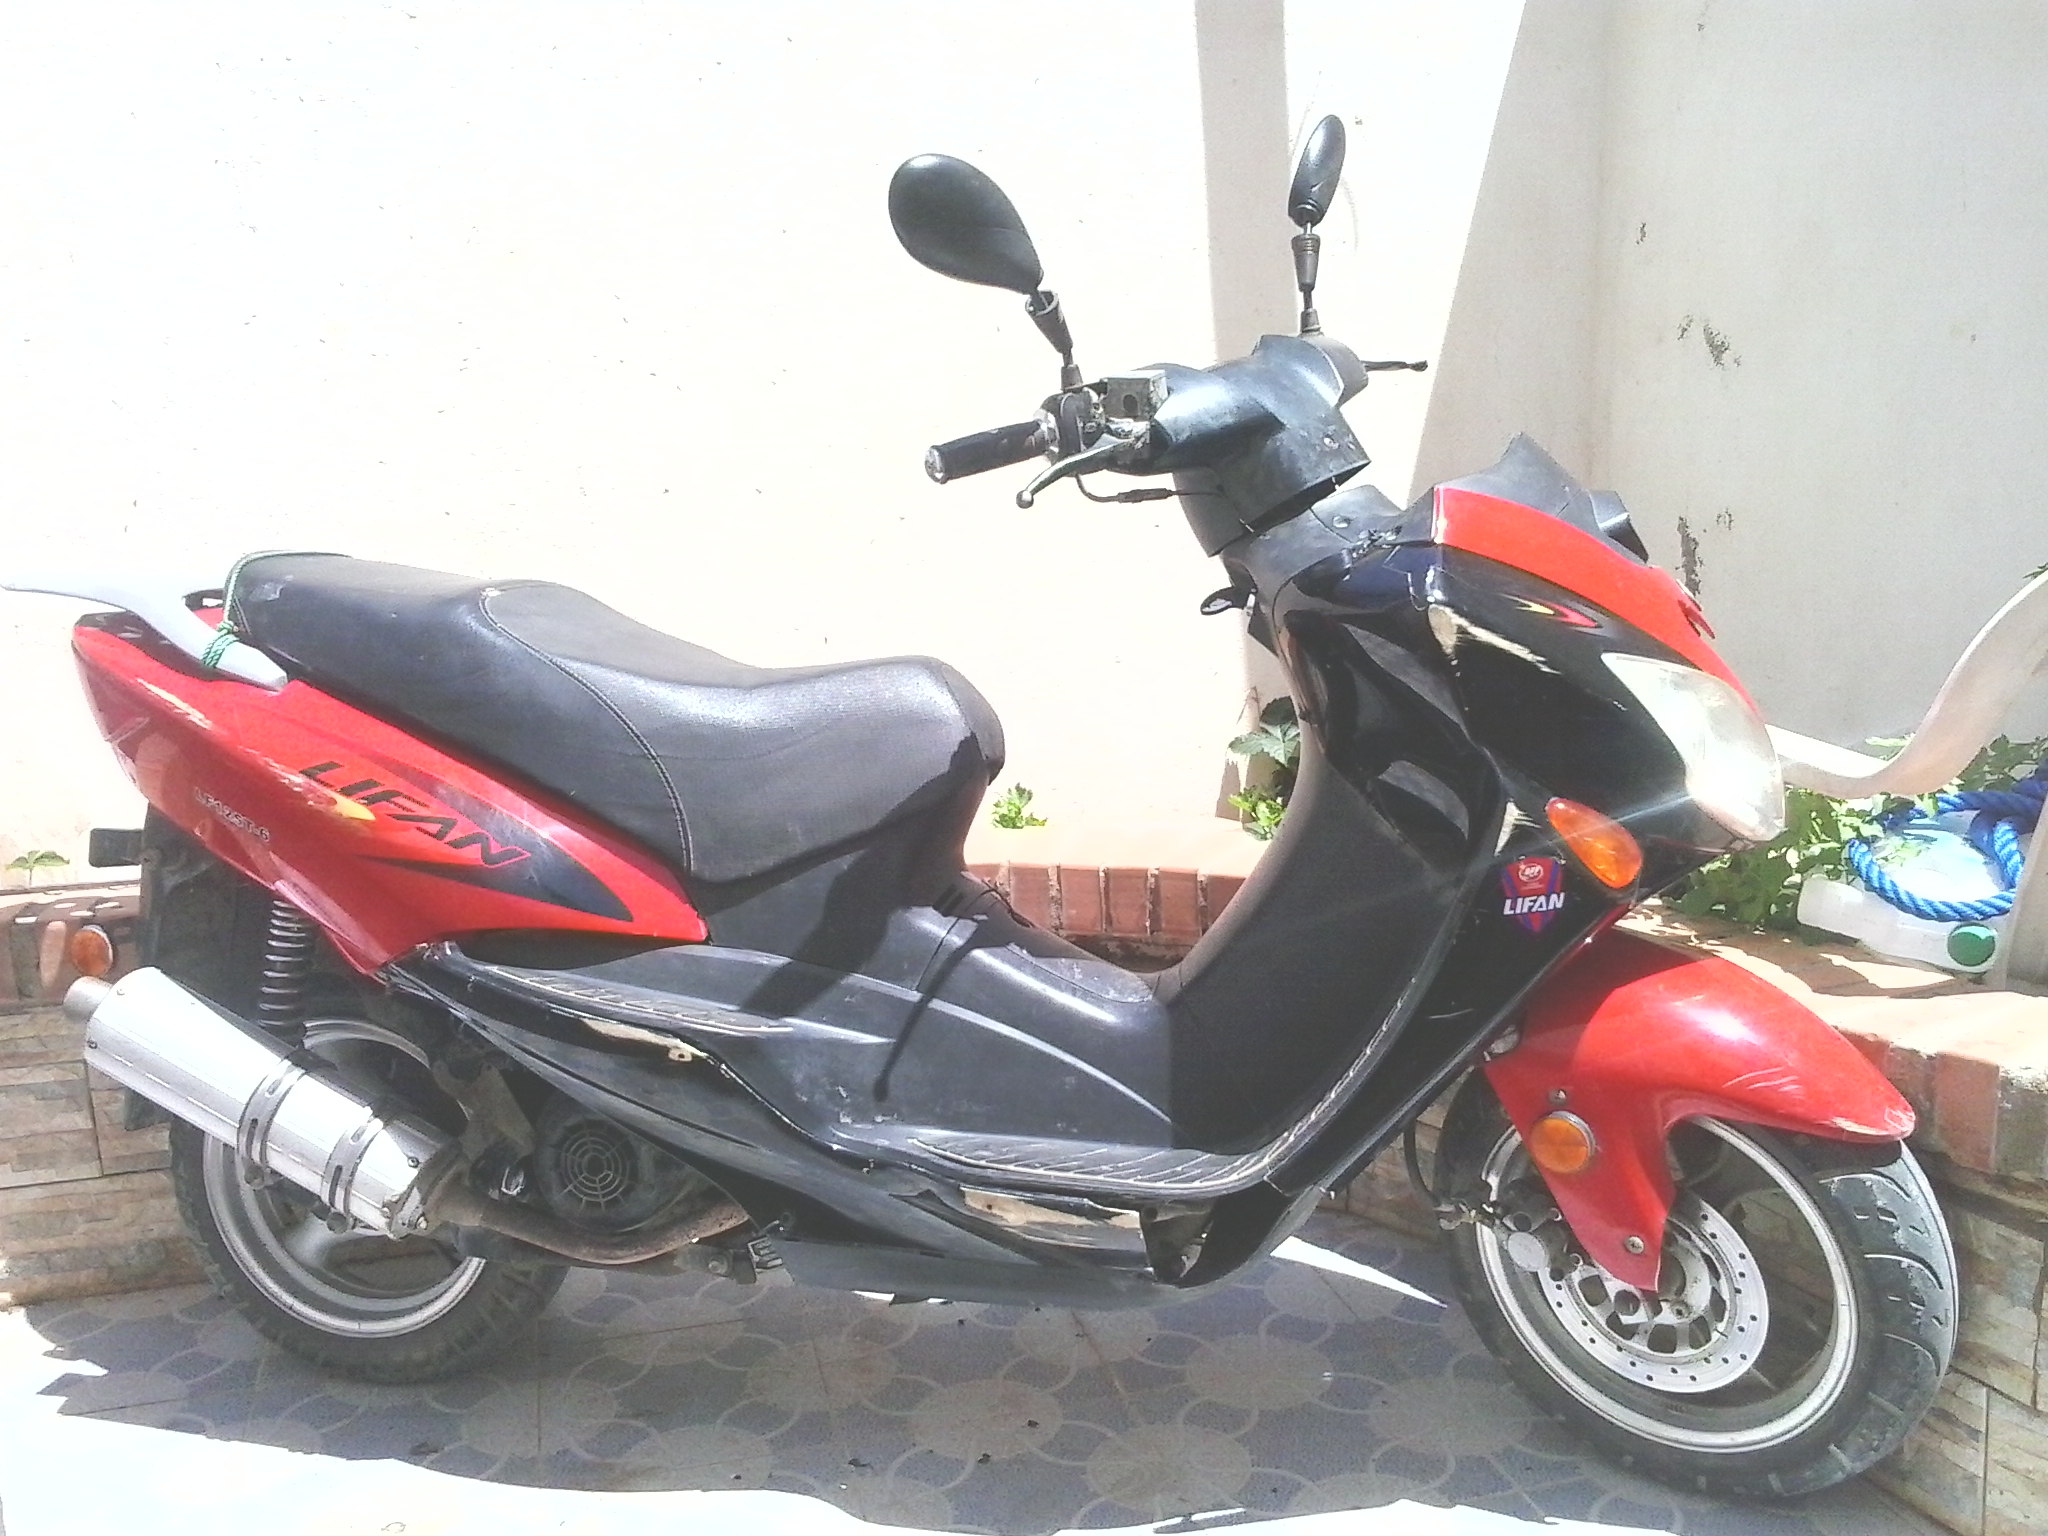 LIFAN 125 T-6 ouedkniss